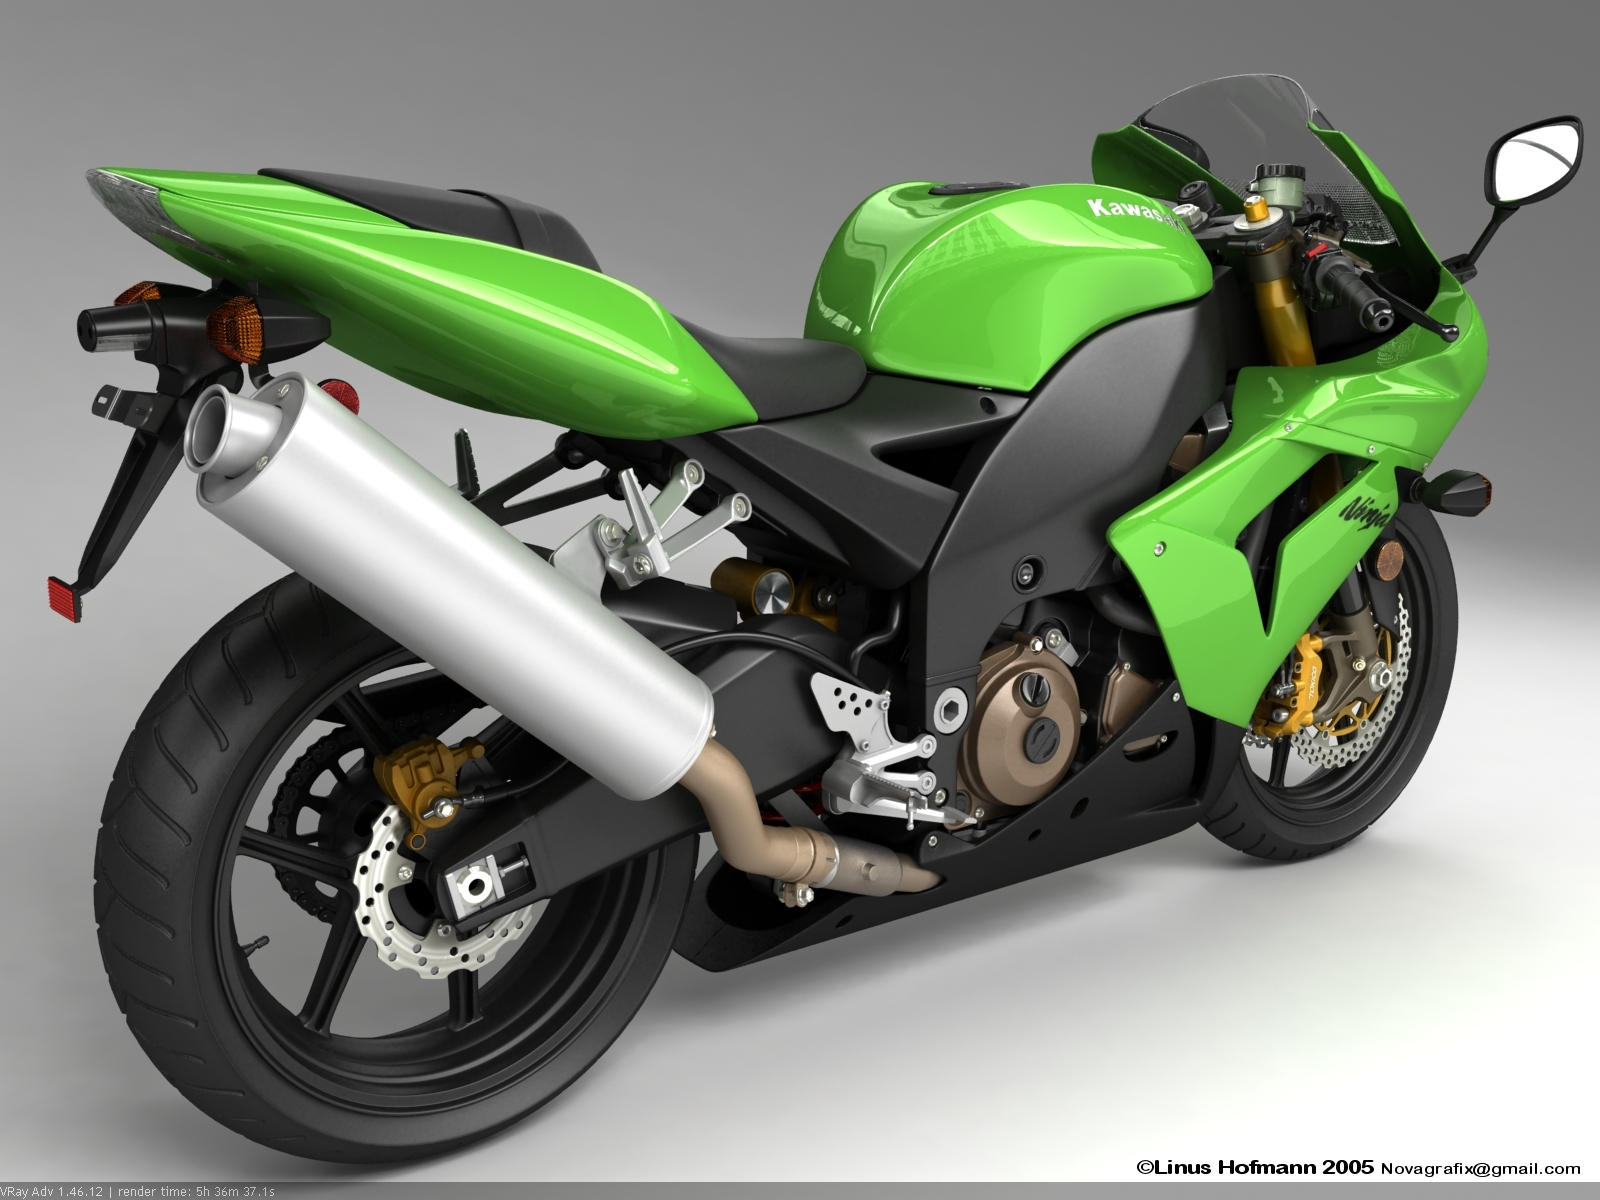 kawasaki ninja zx10r final 01lhnova on deviantart